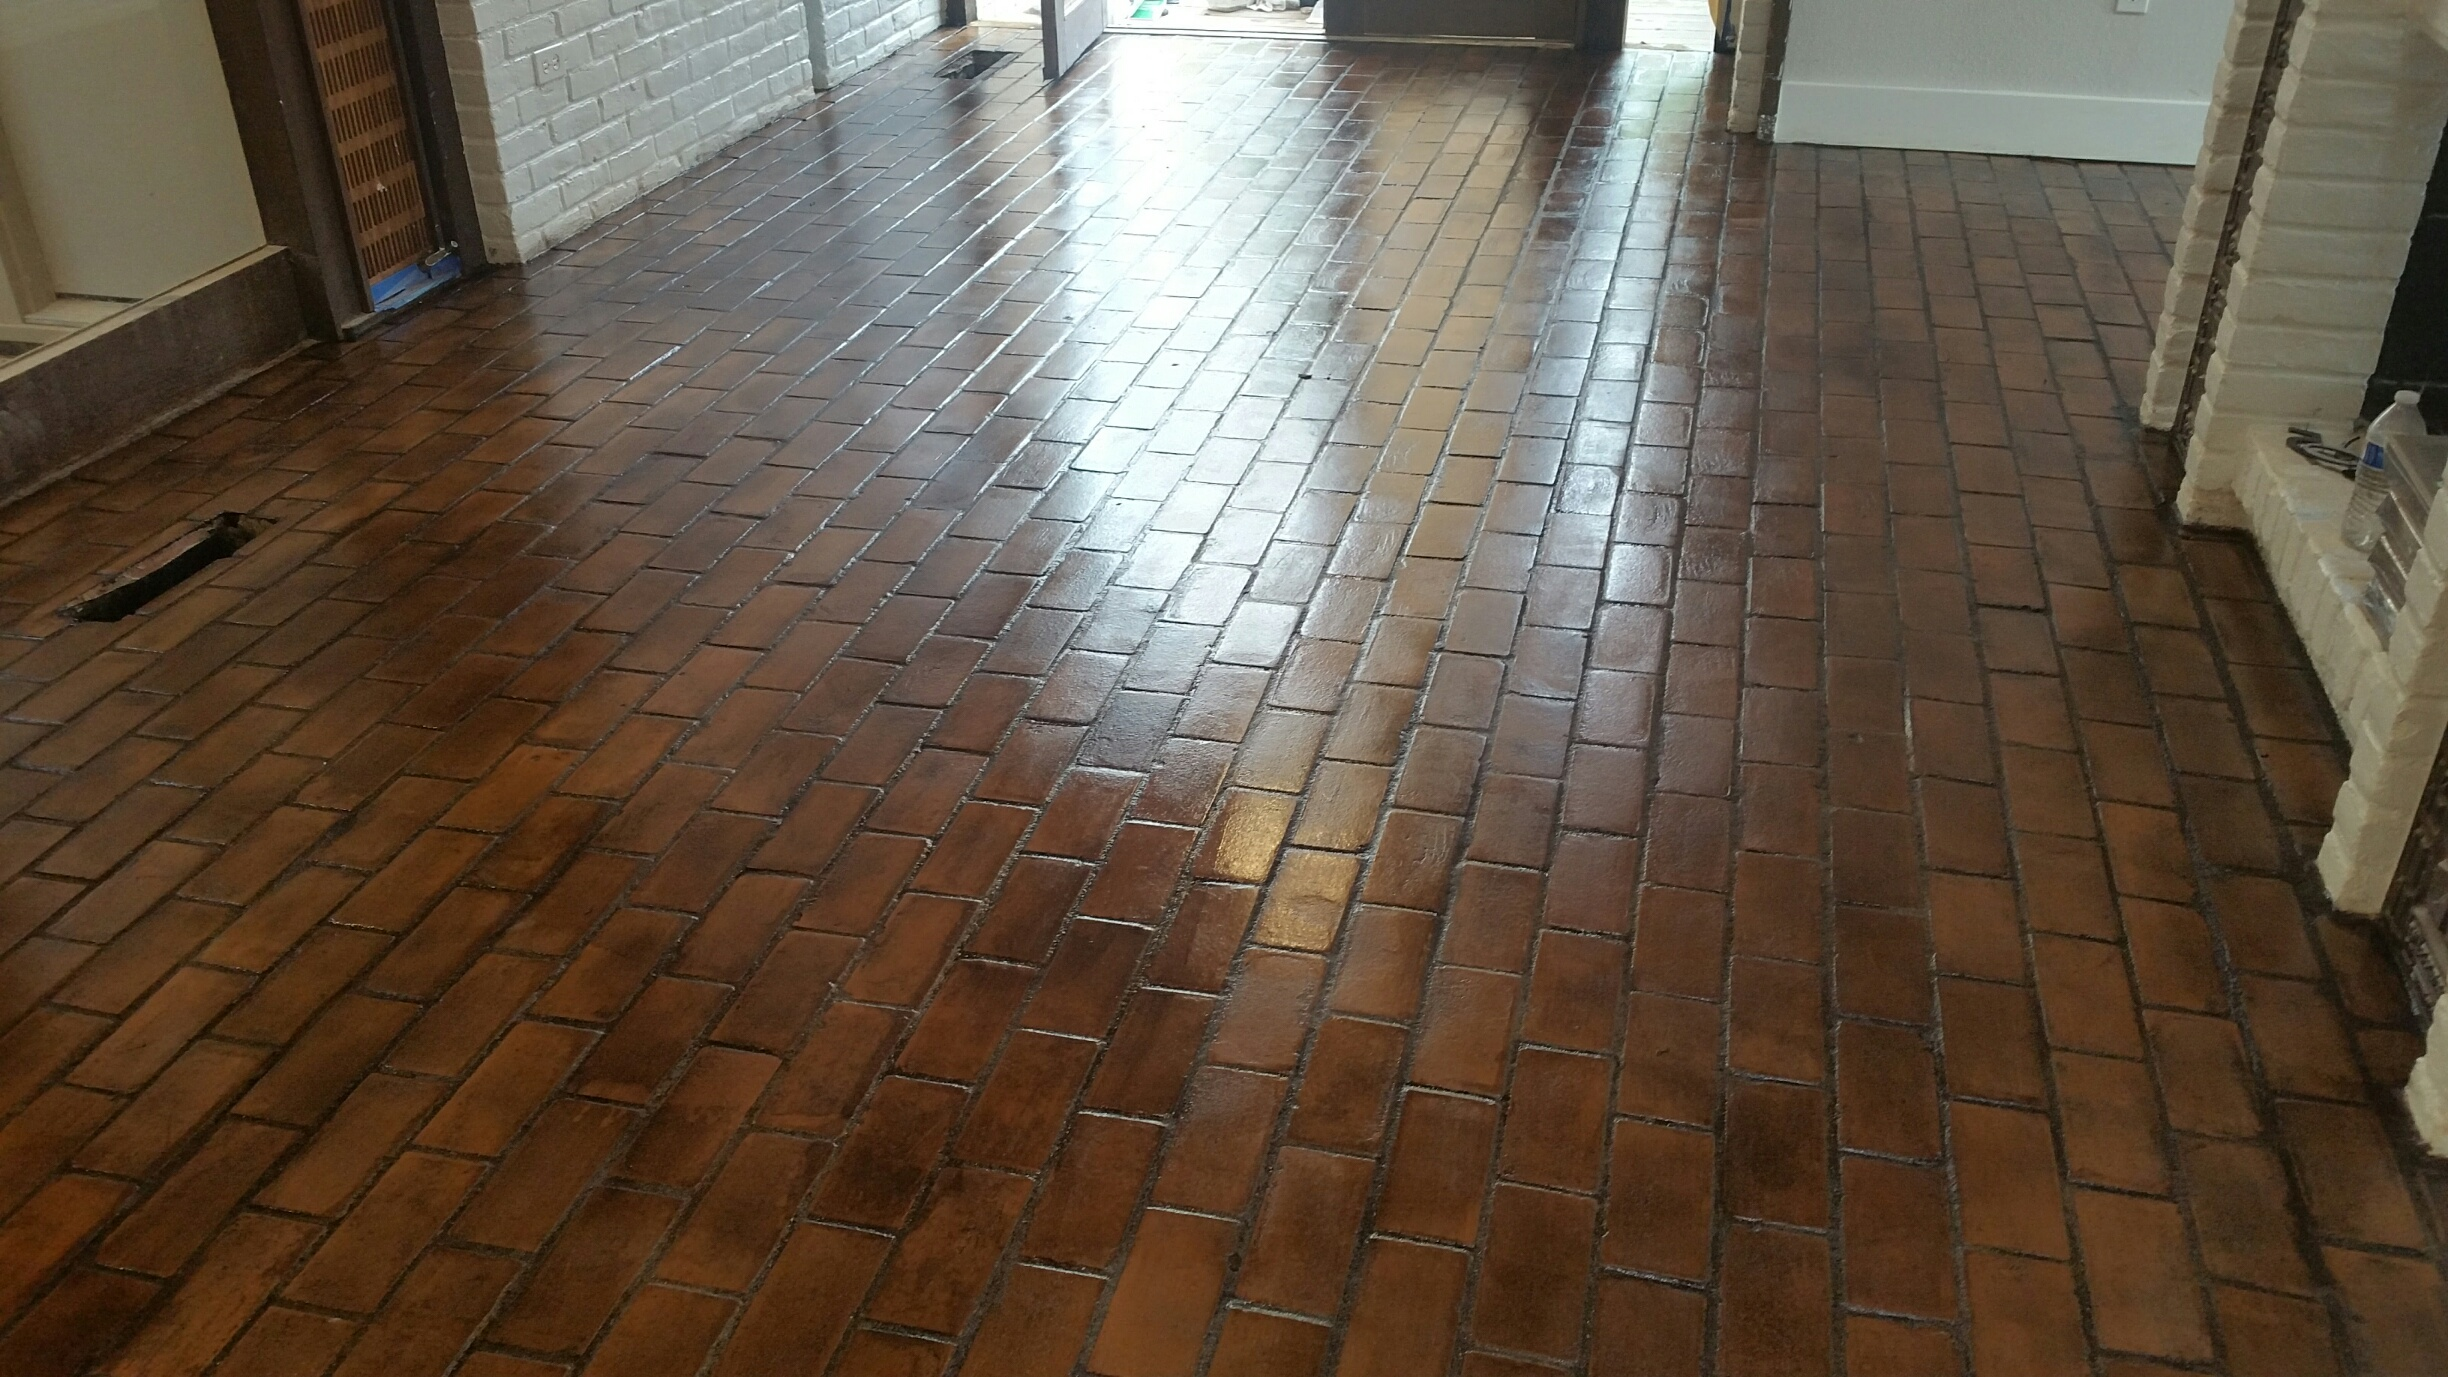 Brick Floor After Cleaning and Restoration